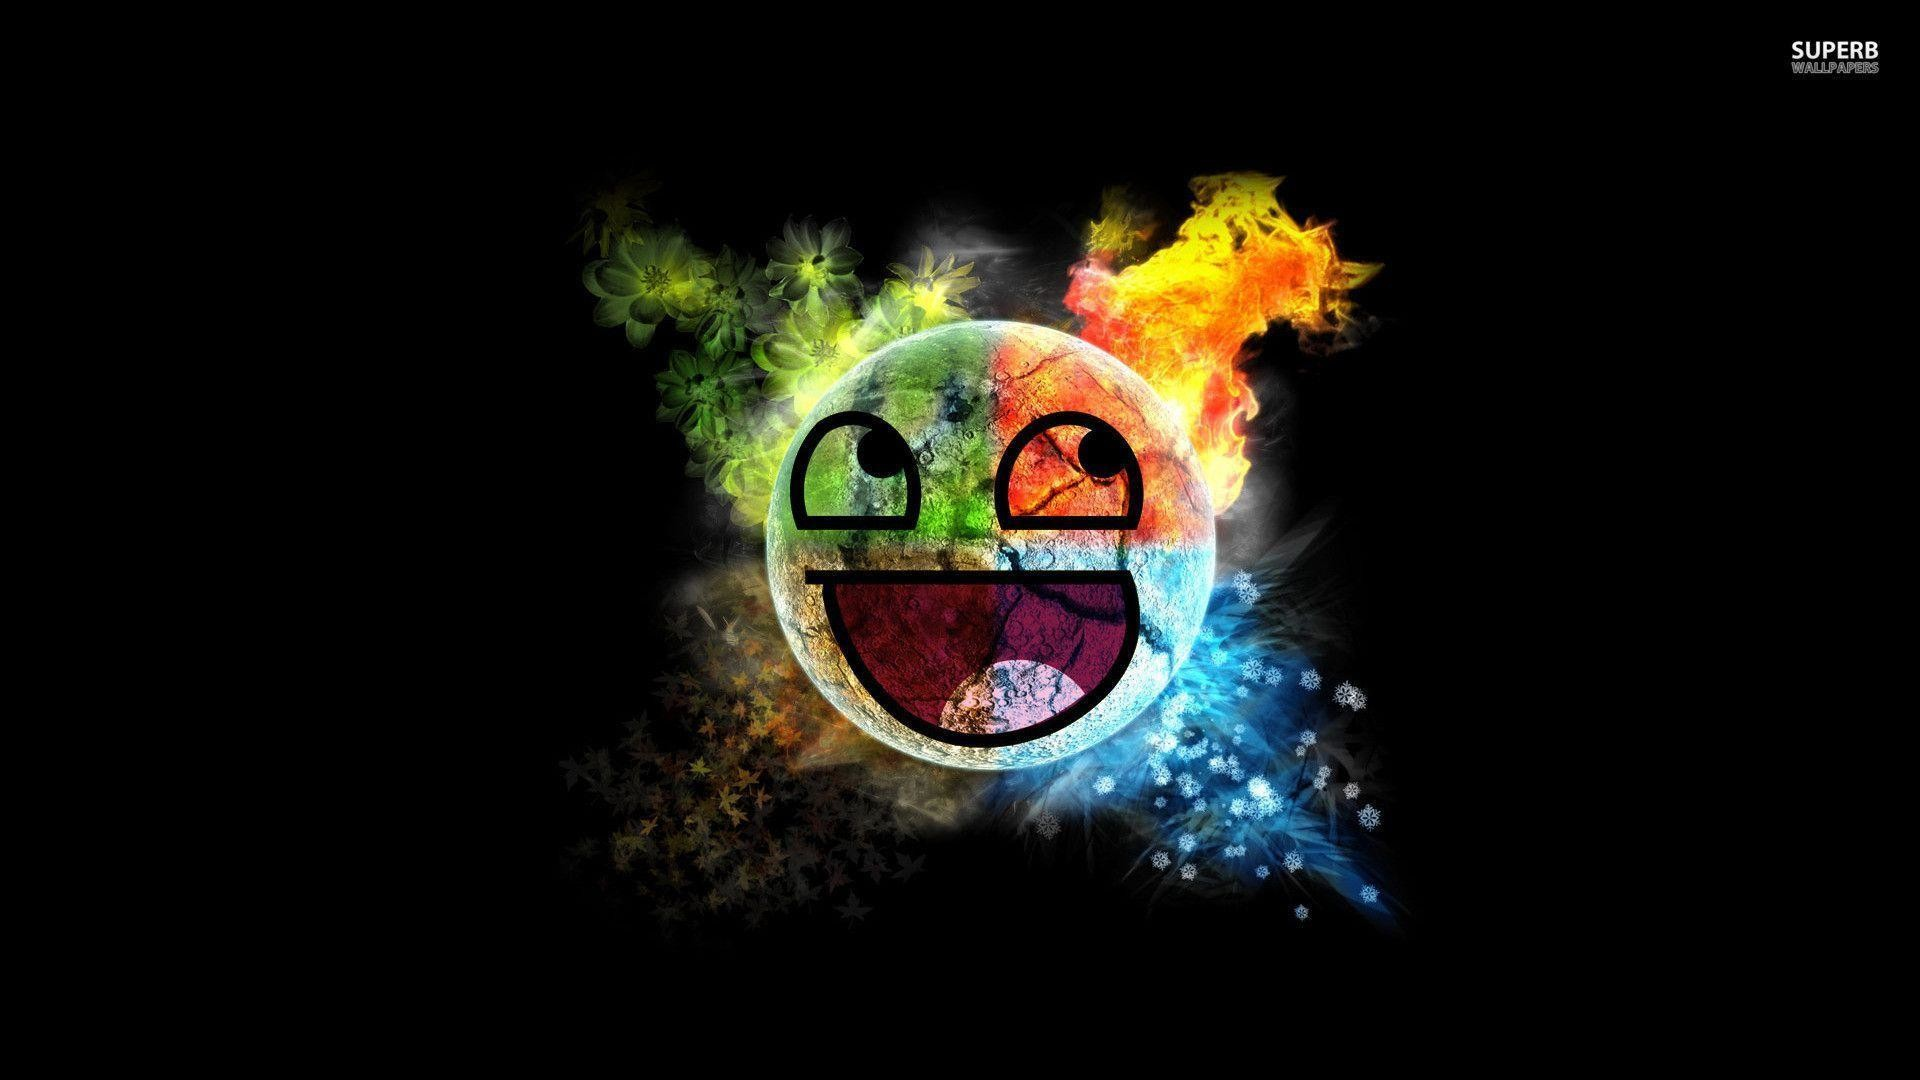 Colorful Awesome Face wallpaper – Meme wallpapers – #